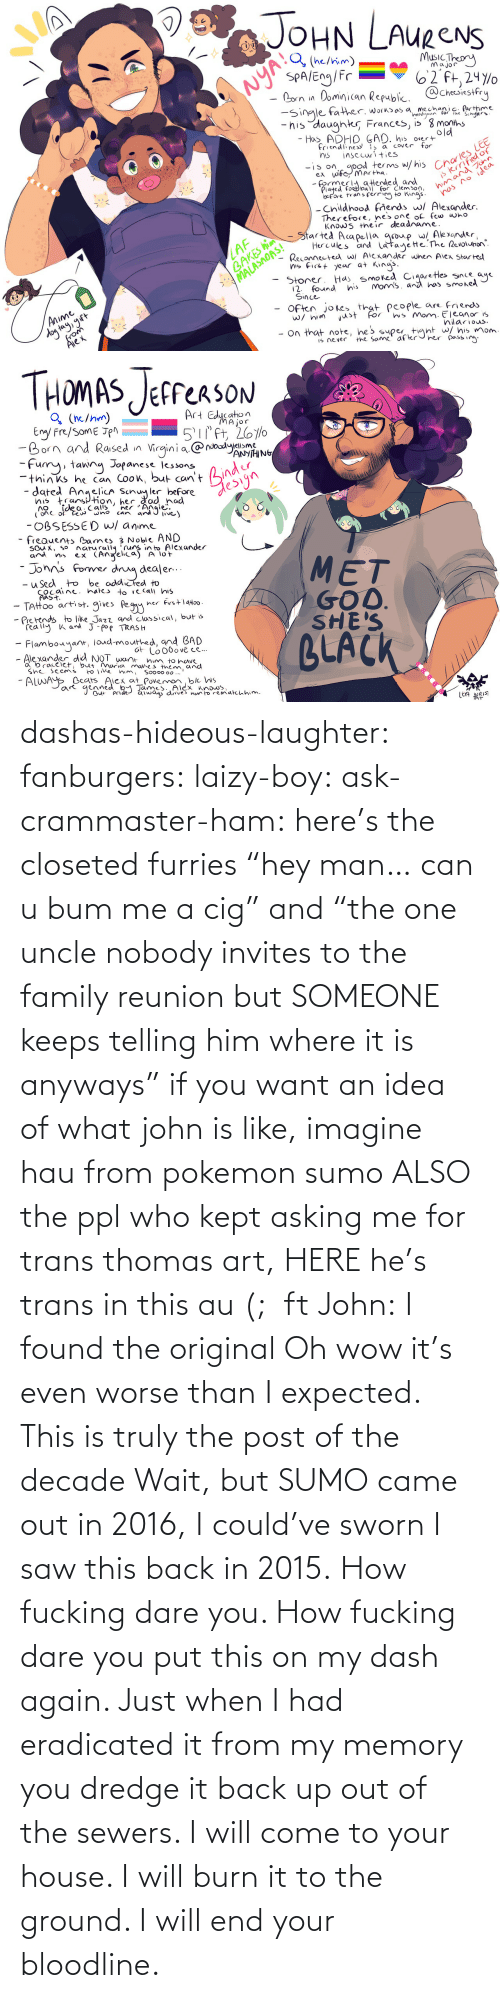 "trans: dashas-hideous-laughter:  fanburgers:   laizy-boy:   ask-crammaster-ham:   here's the closeted furries ""hey man… can u bum me a cig"" and ""the one uncle nobody invites to the family reunion but SOMEONE keeps telling him where it is anyways""   if you want an idea of what john is like, imagine hau from pokemon sumo ALSO the ppl who kept asking me for trans thomas art, HERE he's trans in this au (;  ft John:    I found the original     Oh wow it's even worse than I expected. This is truly the post of the decade    Wait, but SUMO came out in 2016, I could've sworn I saw this back in 2015.    How fucking dare you. How fucking dare you put this on my dash again. Just when I had eradicated it from my memory you dredge it back up out of the sewers. I will come to your house. I will burn it to the ground. I will end your bloodline."